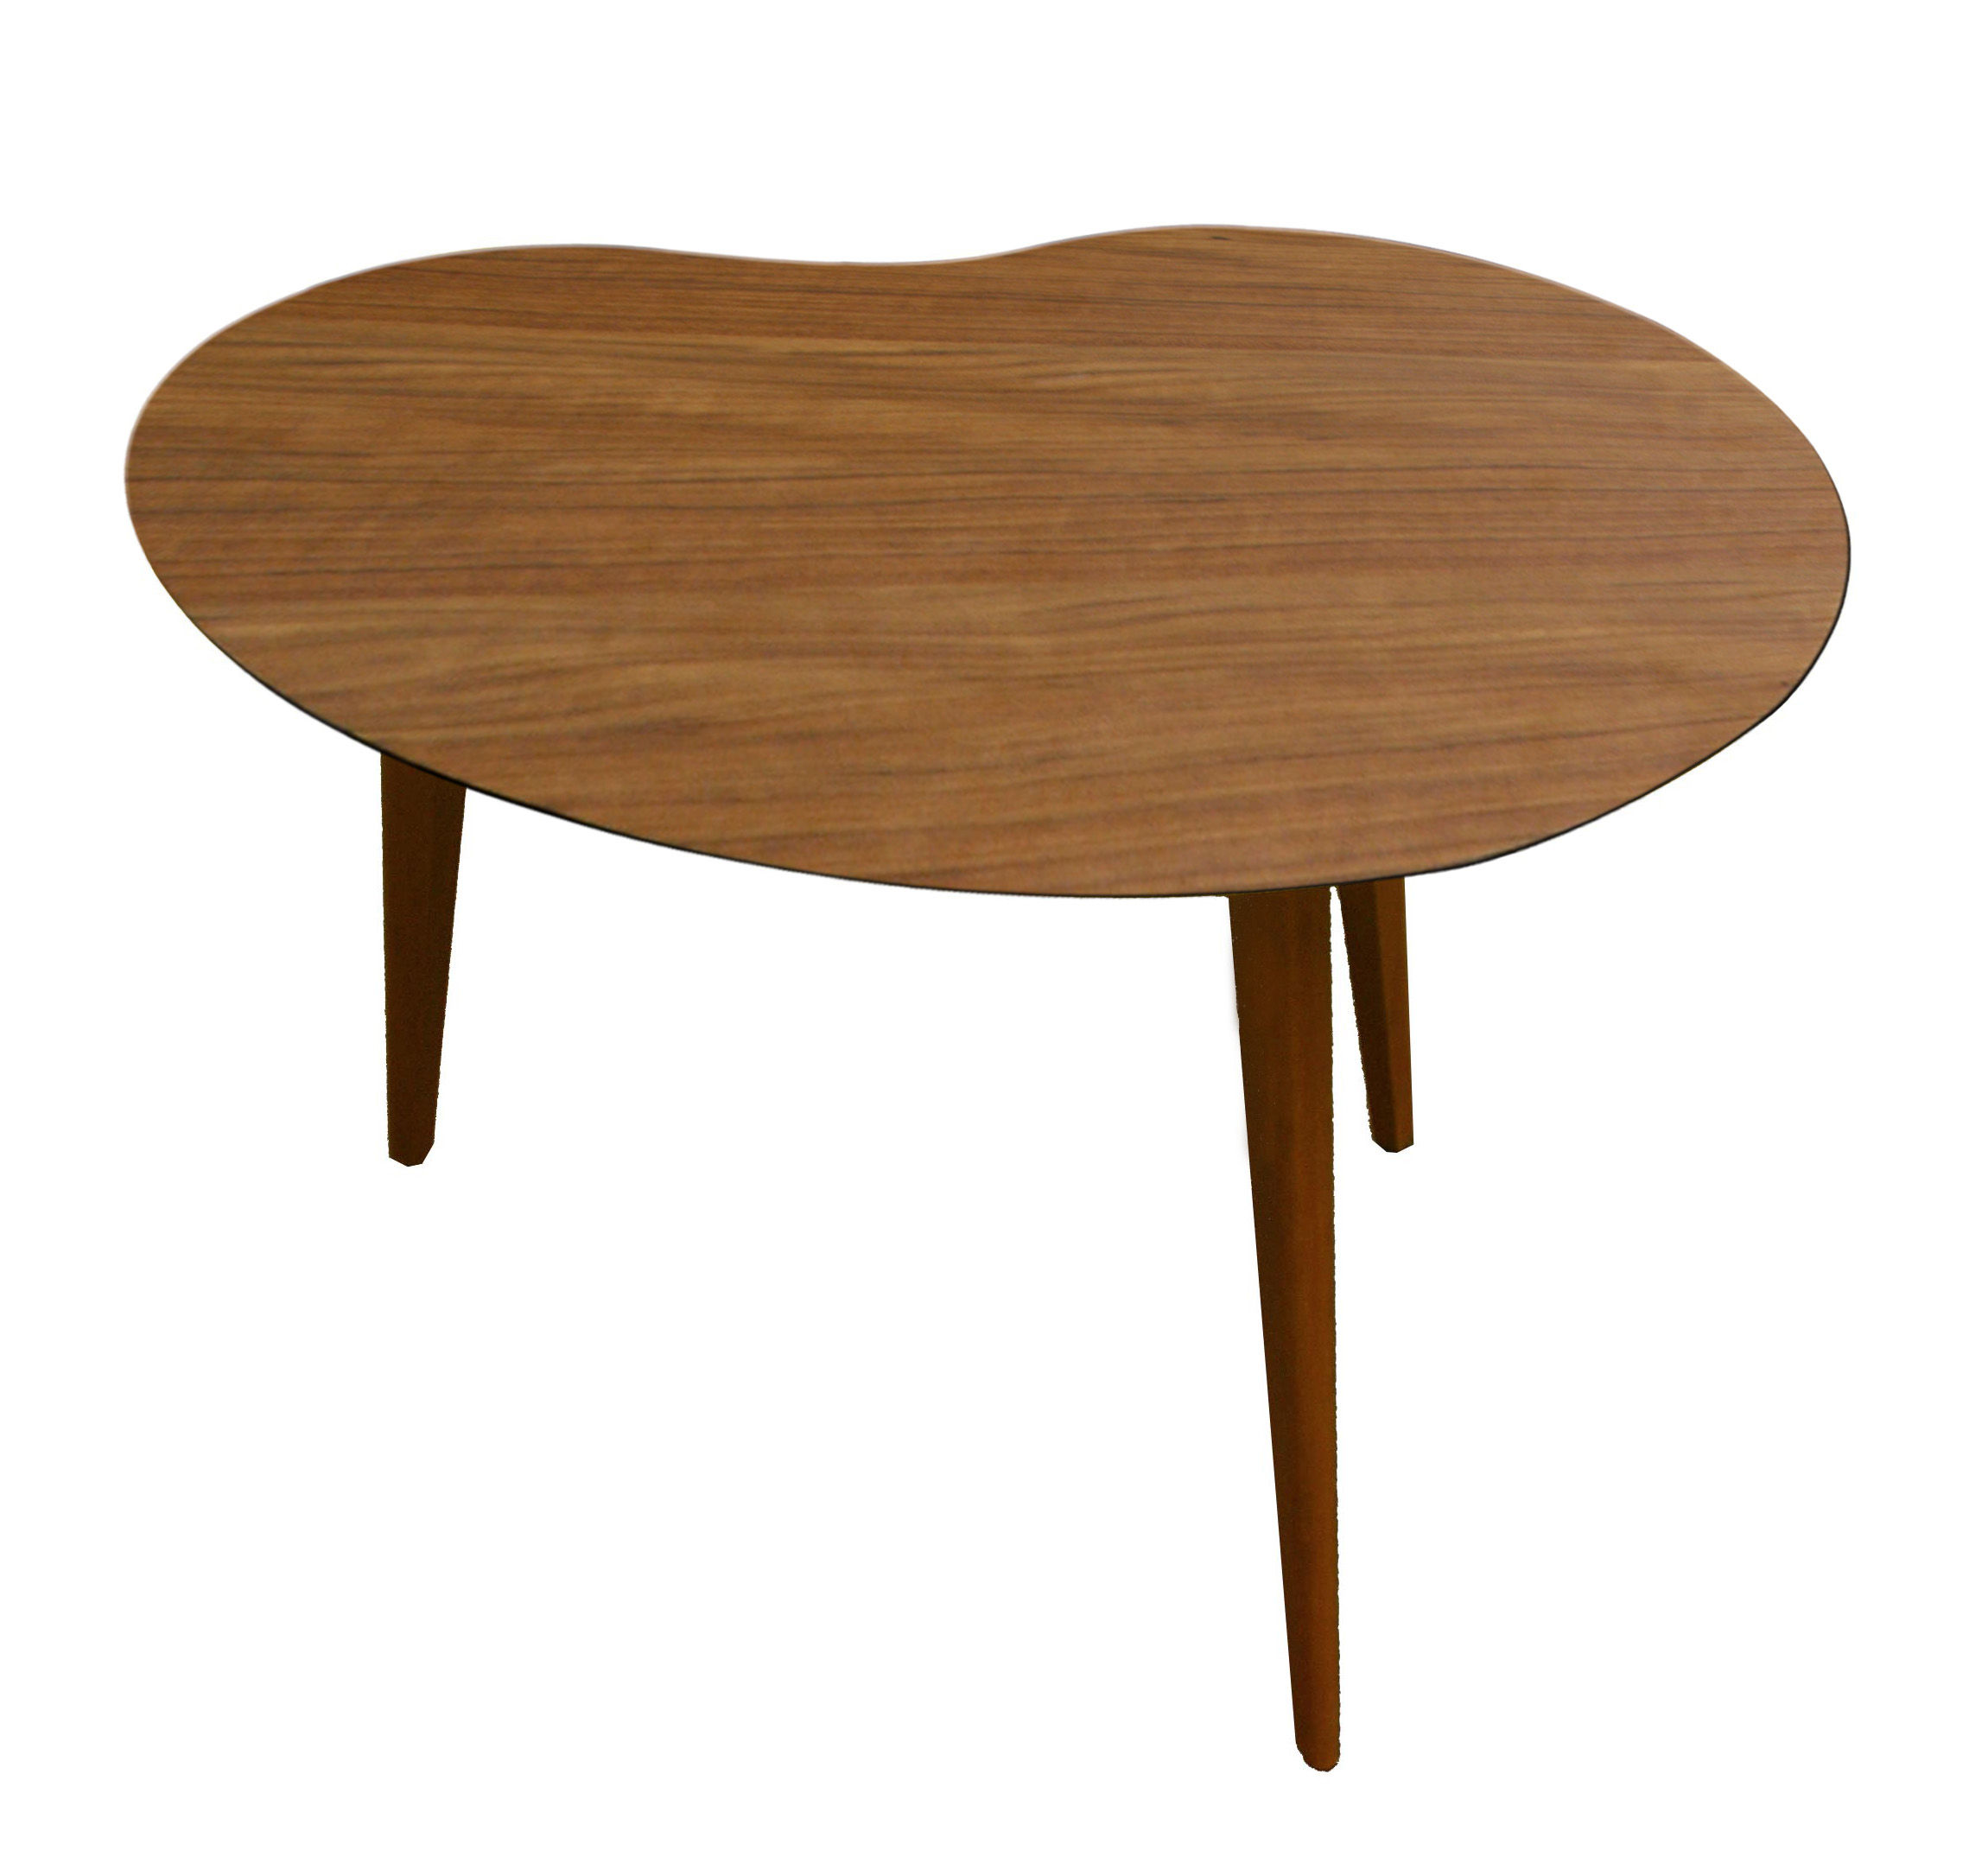 Pied De Table Basse Scandinave Table Basse Lalinde Haricot Small L 63 Cm Sentou Edition